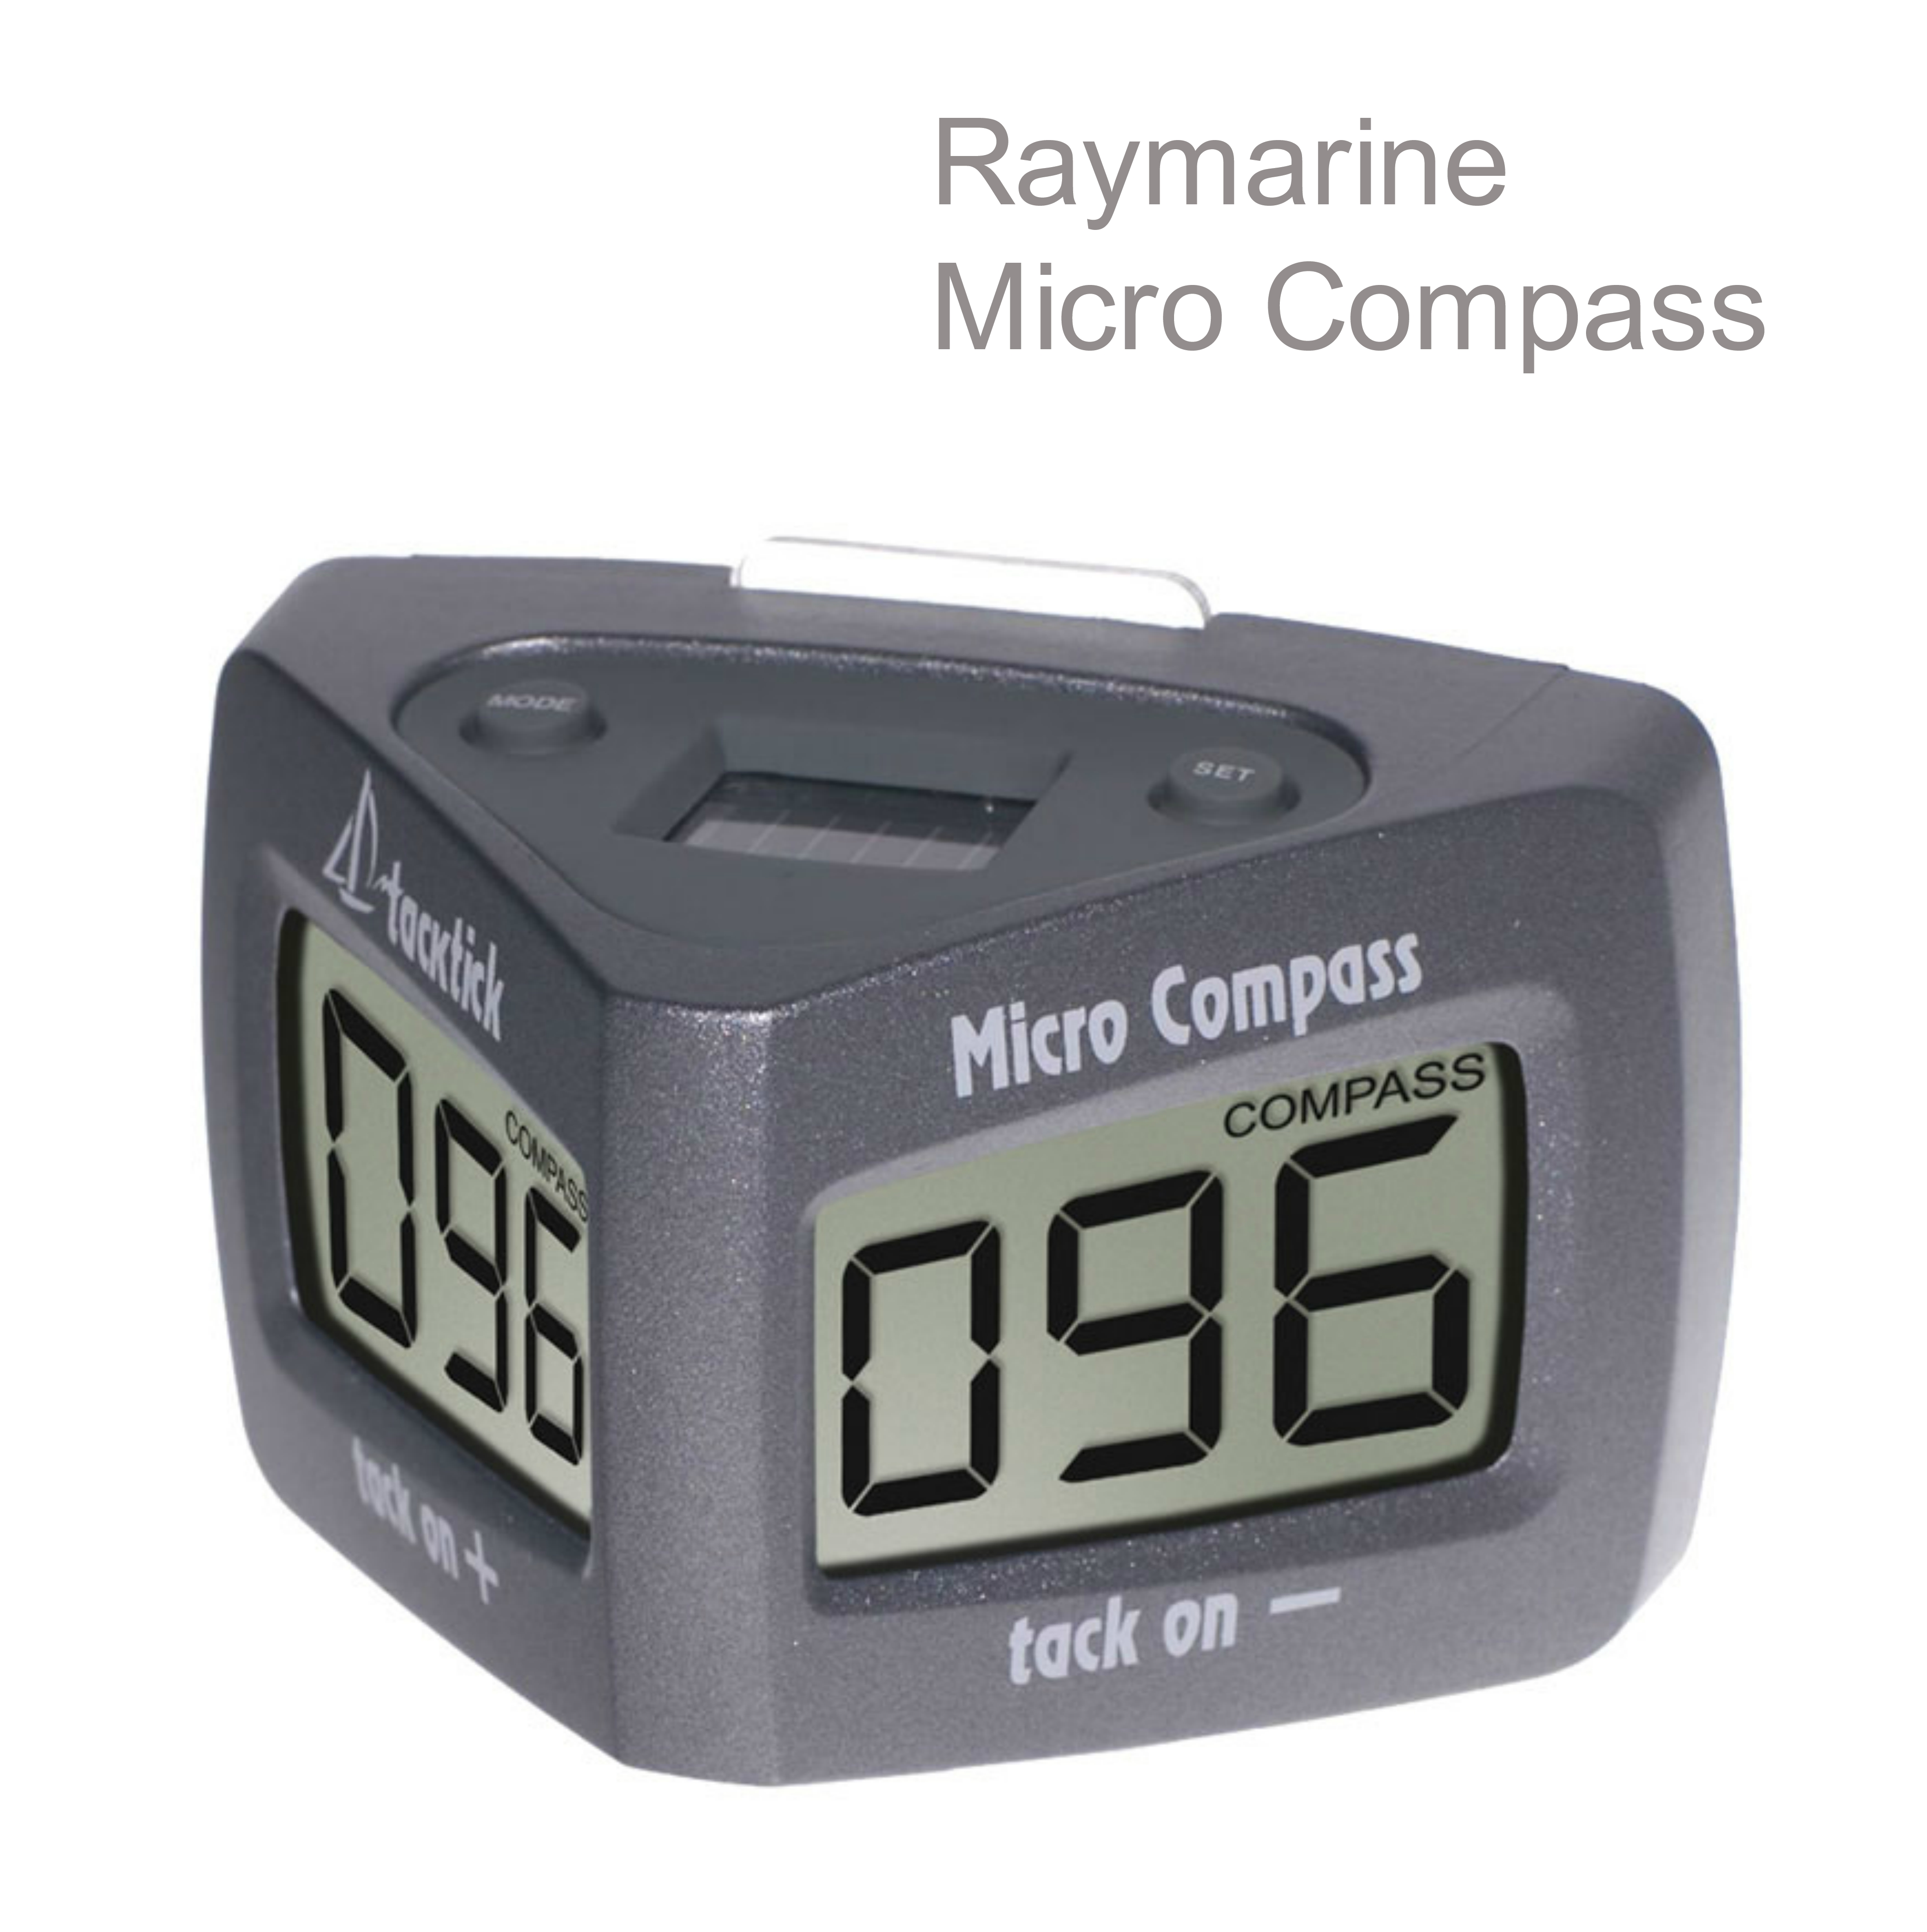 Raymarine T060 Micro Compass|Waterproof|Stable Figure|VMG|Wind Speed|For Marine